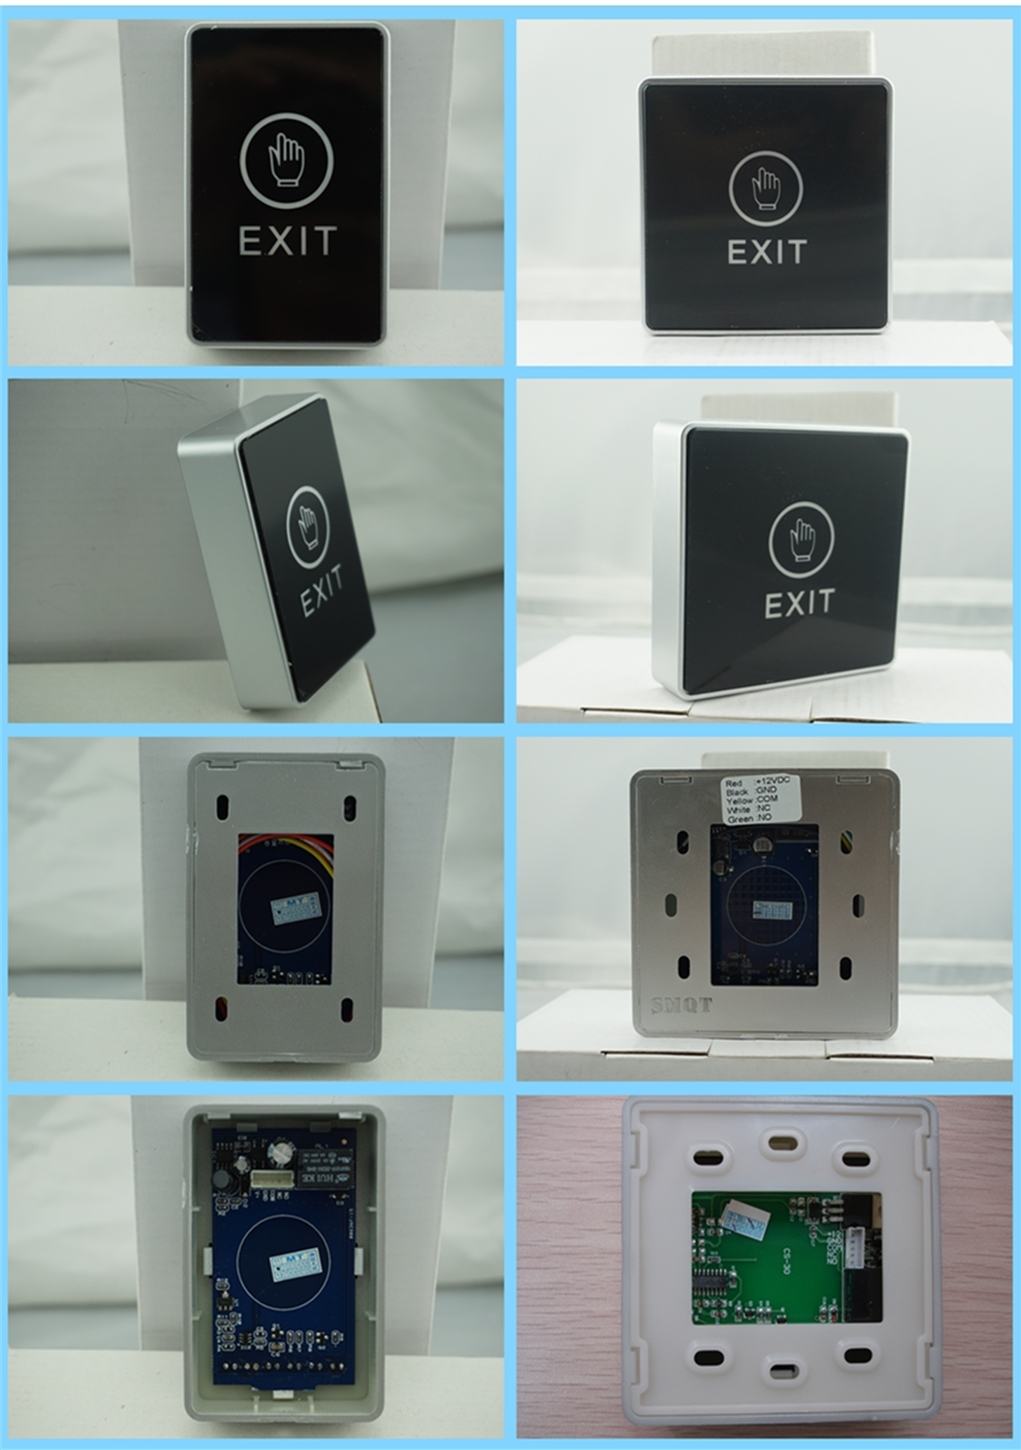 LED back light door switch button